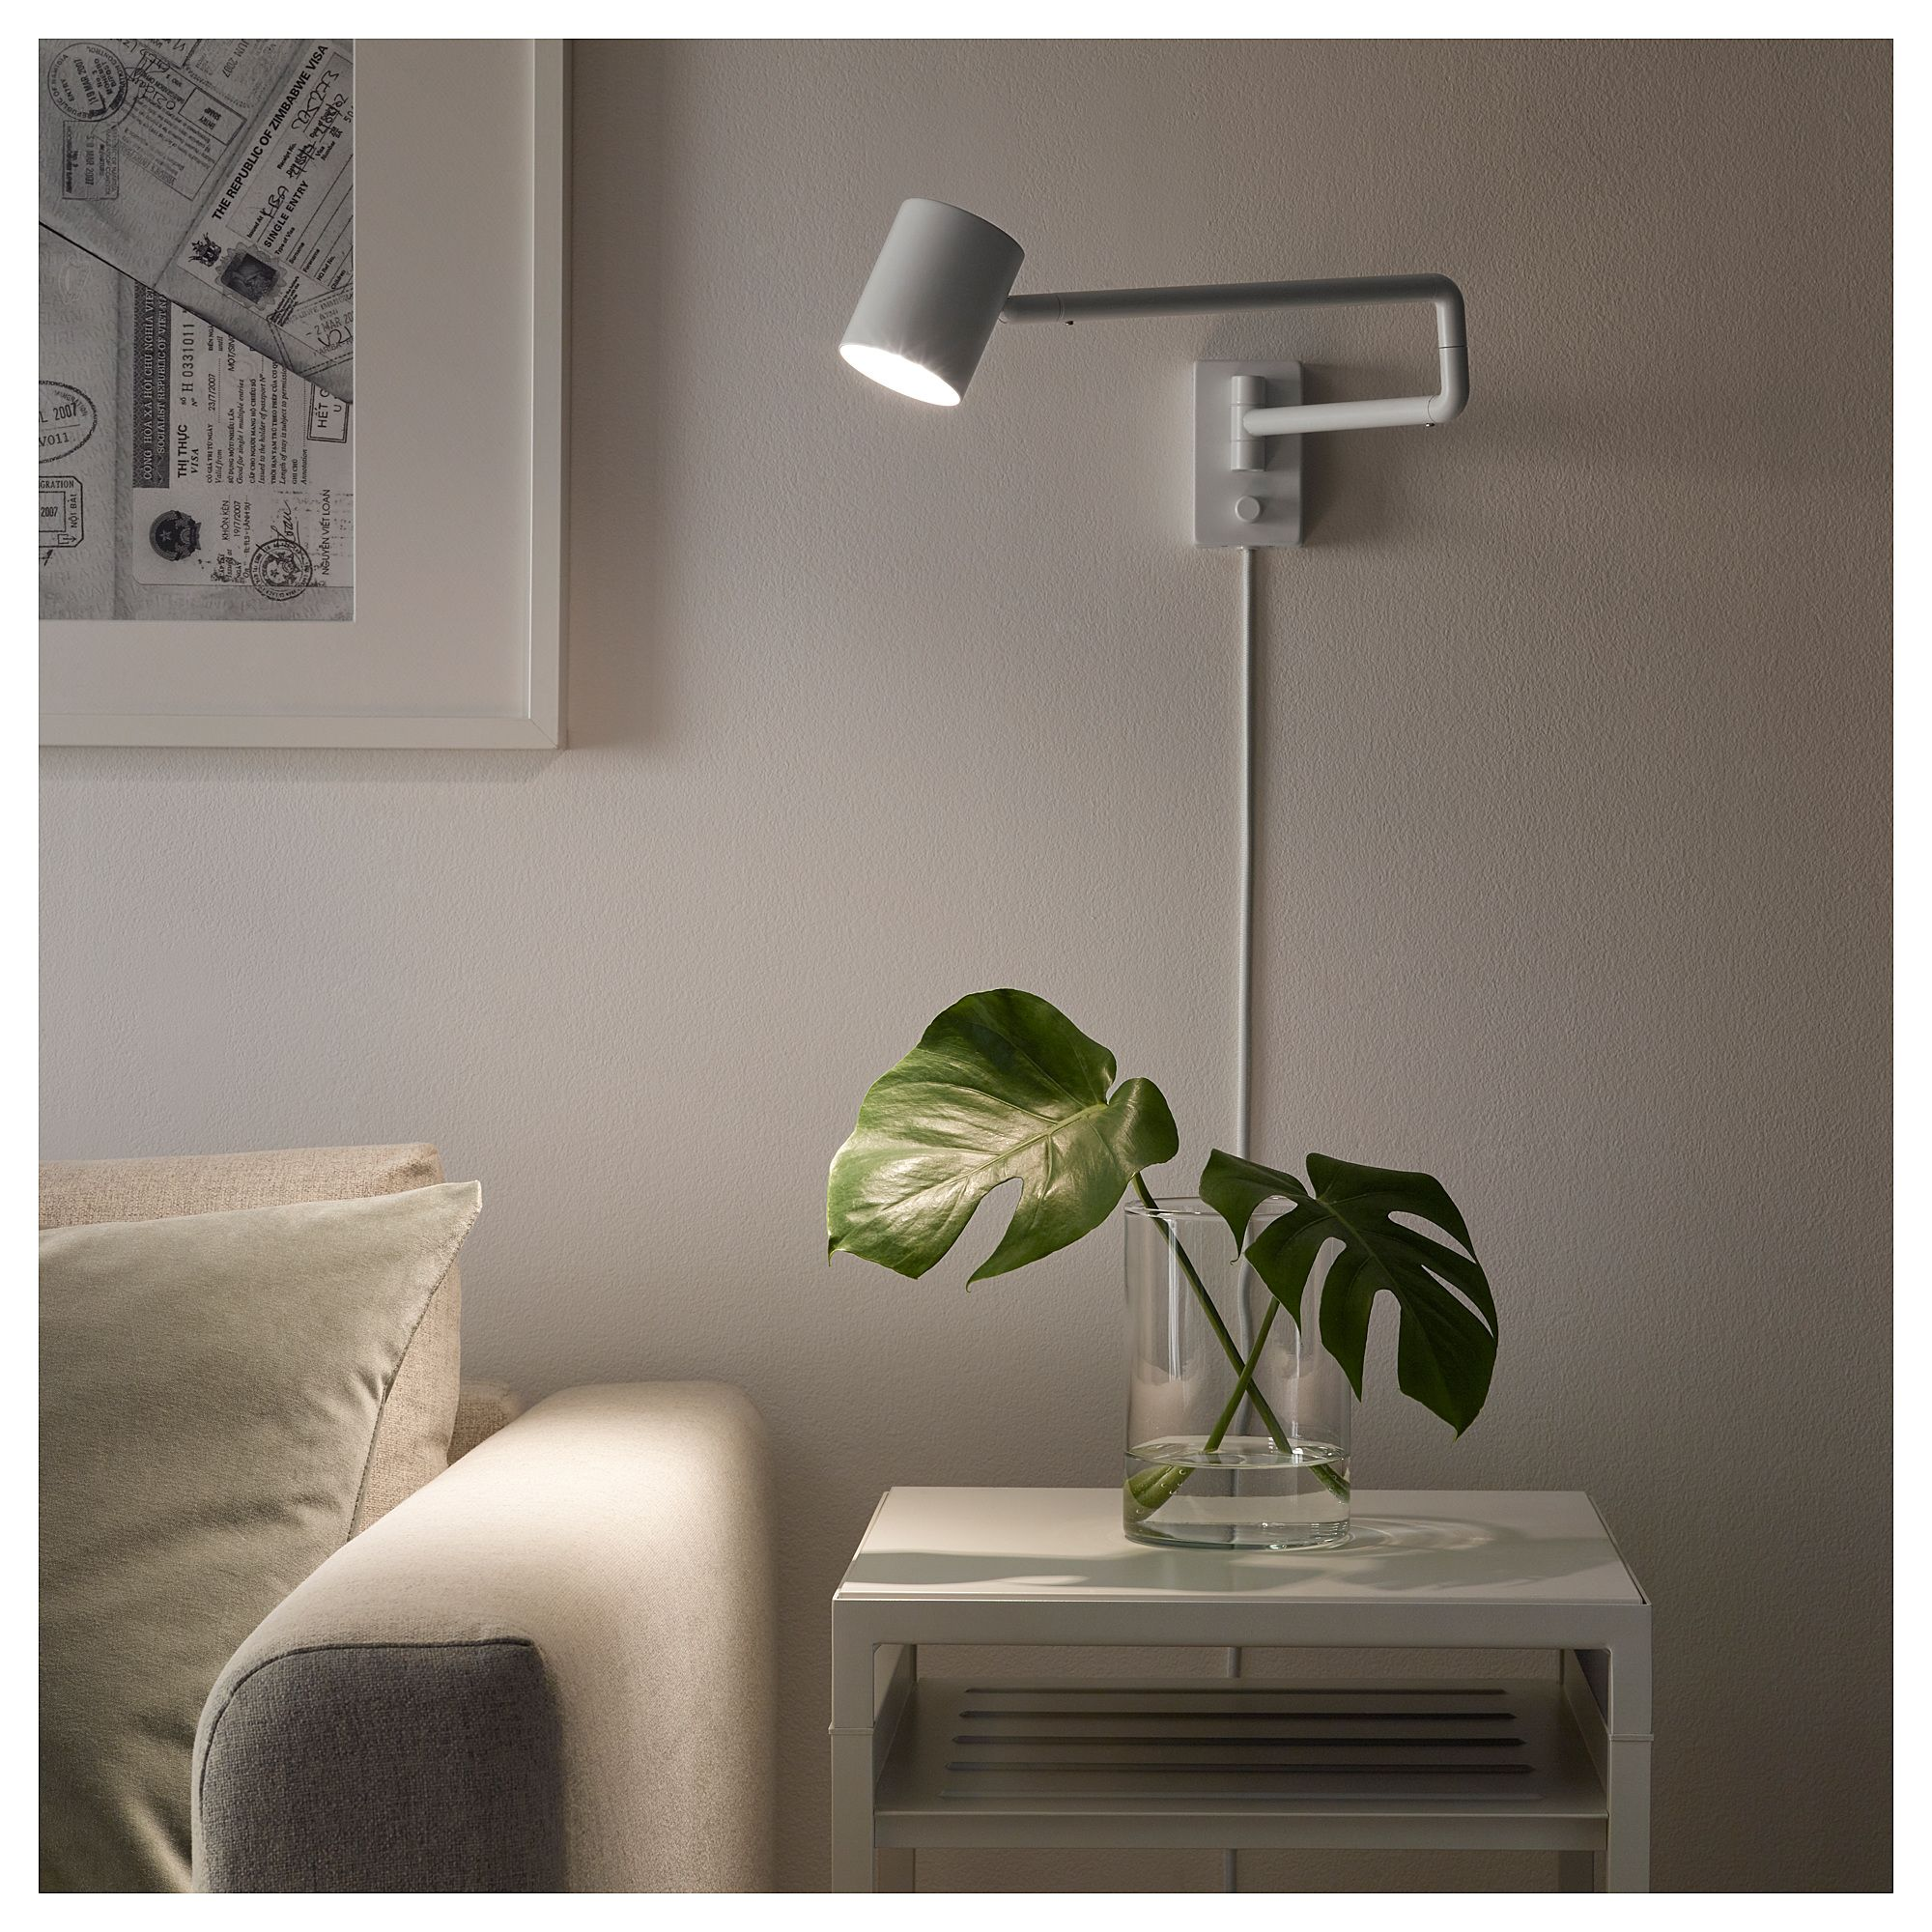 Nymane Wall Lamp With Swing Arm White Ikea Wall Lamp Ikea Wall Ikea Wall Lights